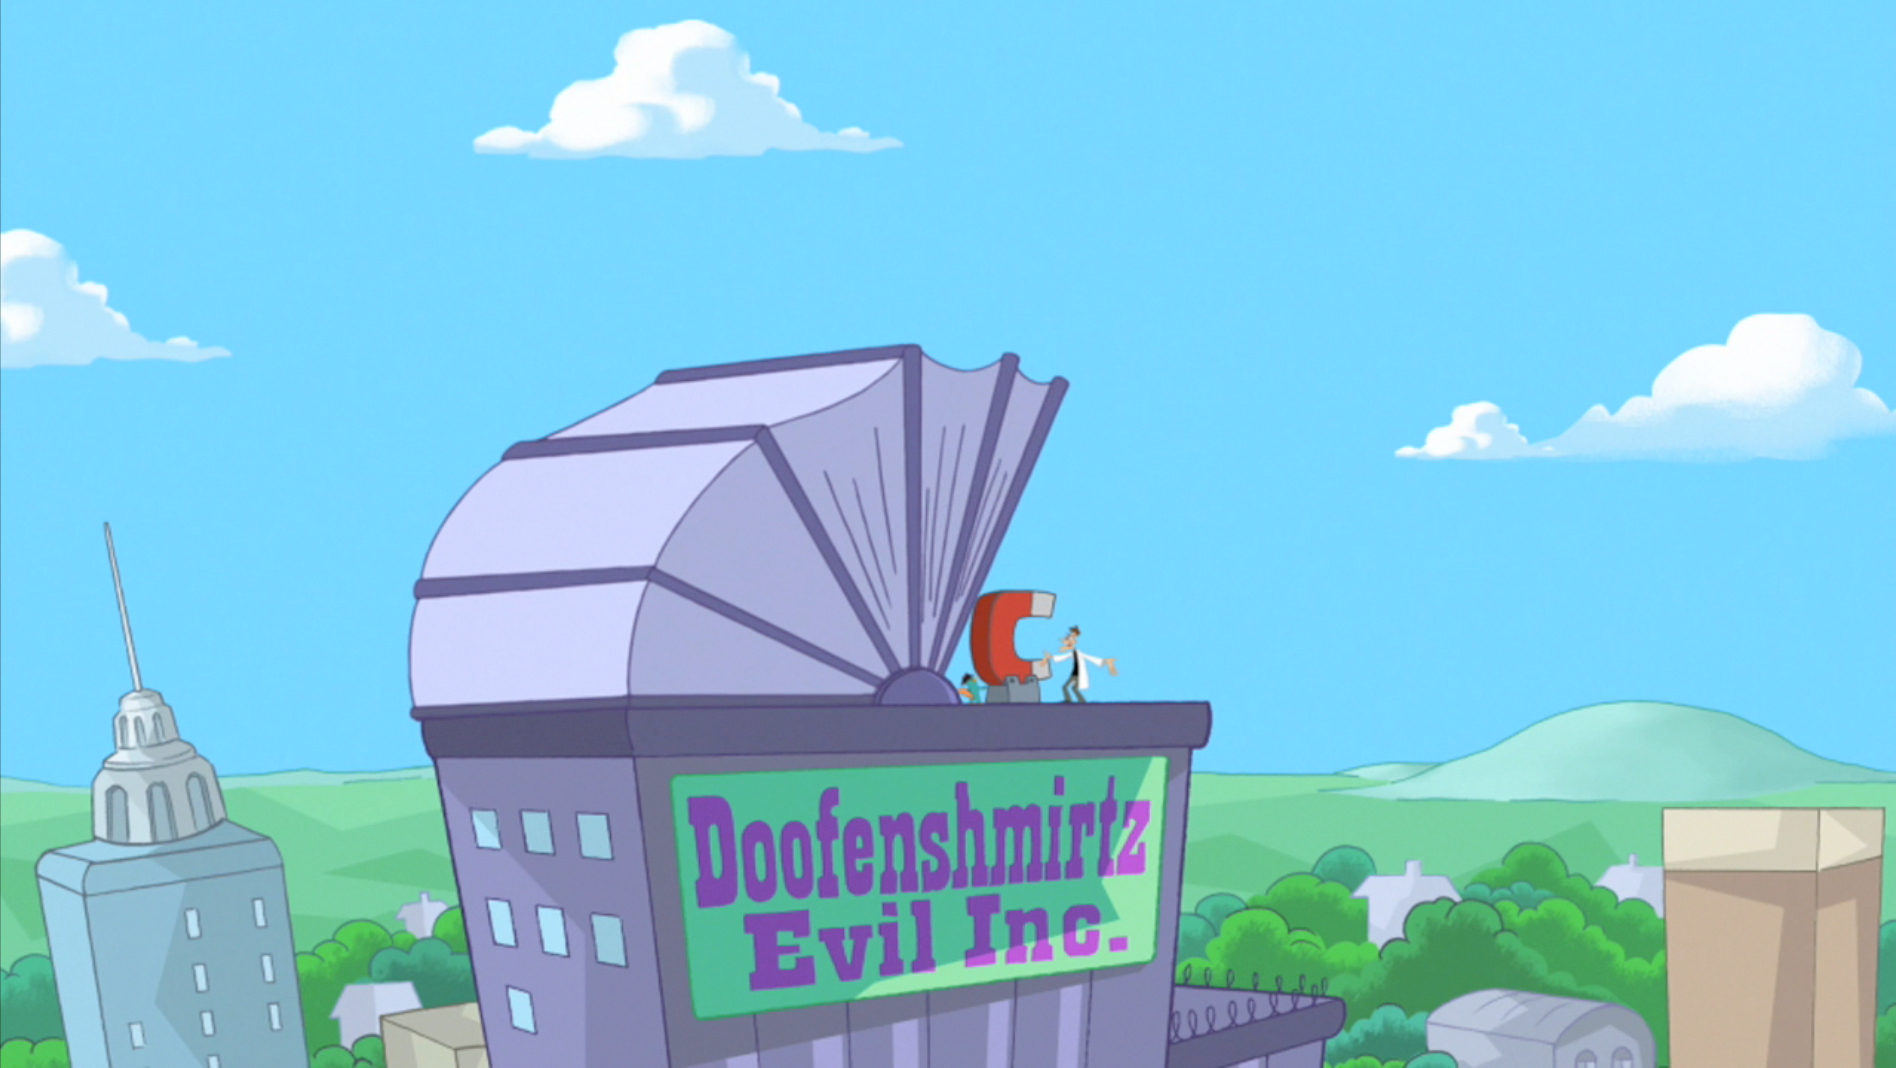 Image Retractable Roof Jpg Phineas And Ferb Wiki